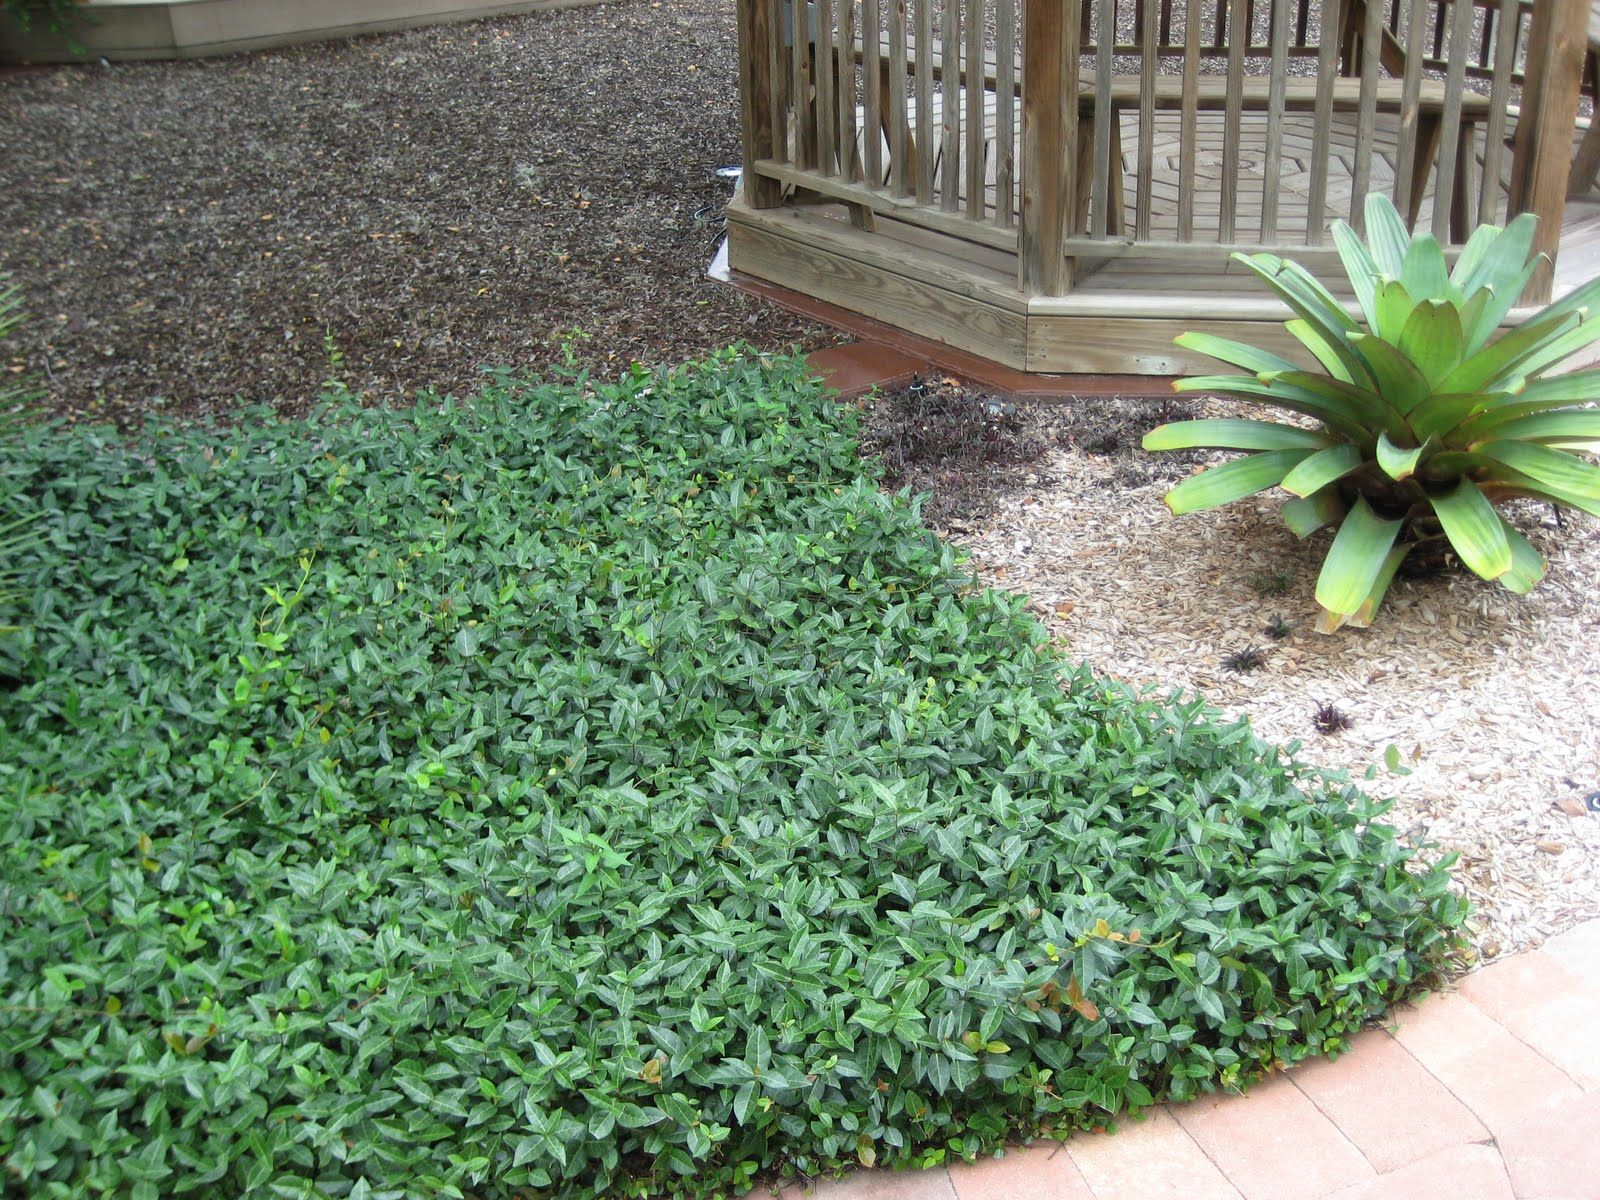 How to plant ground cover for shady areas - Uf Ifas Extension Polk County Florida Friendly Landscaping Asiatic Jasmine A Versatile Groundcover